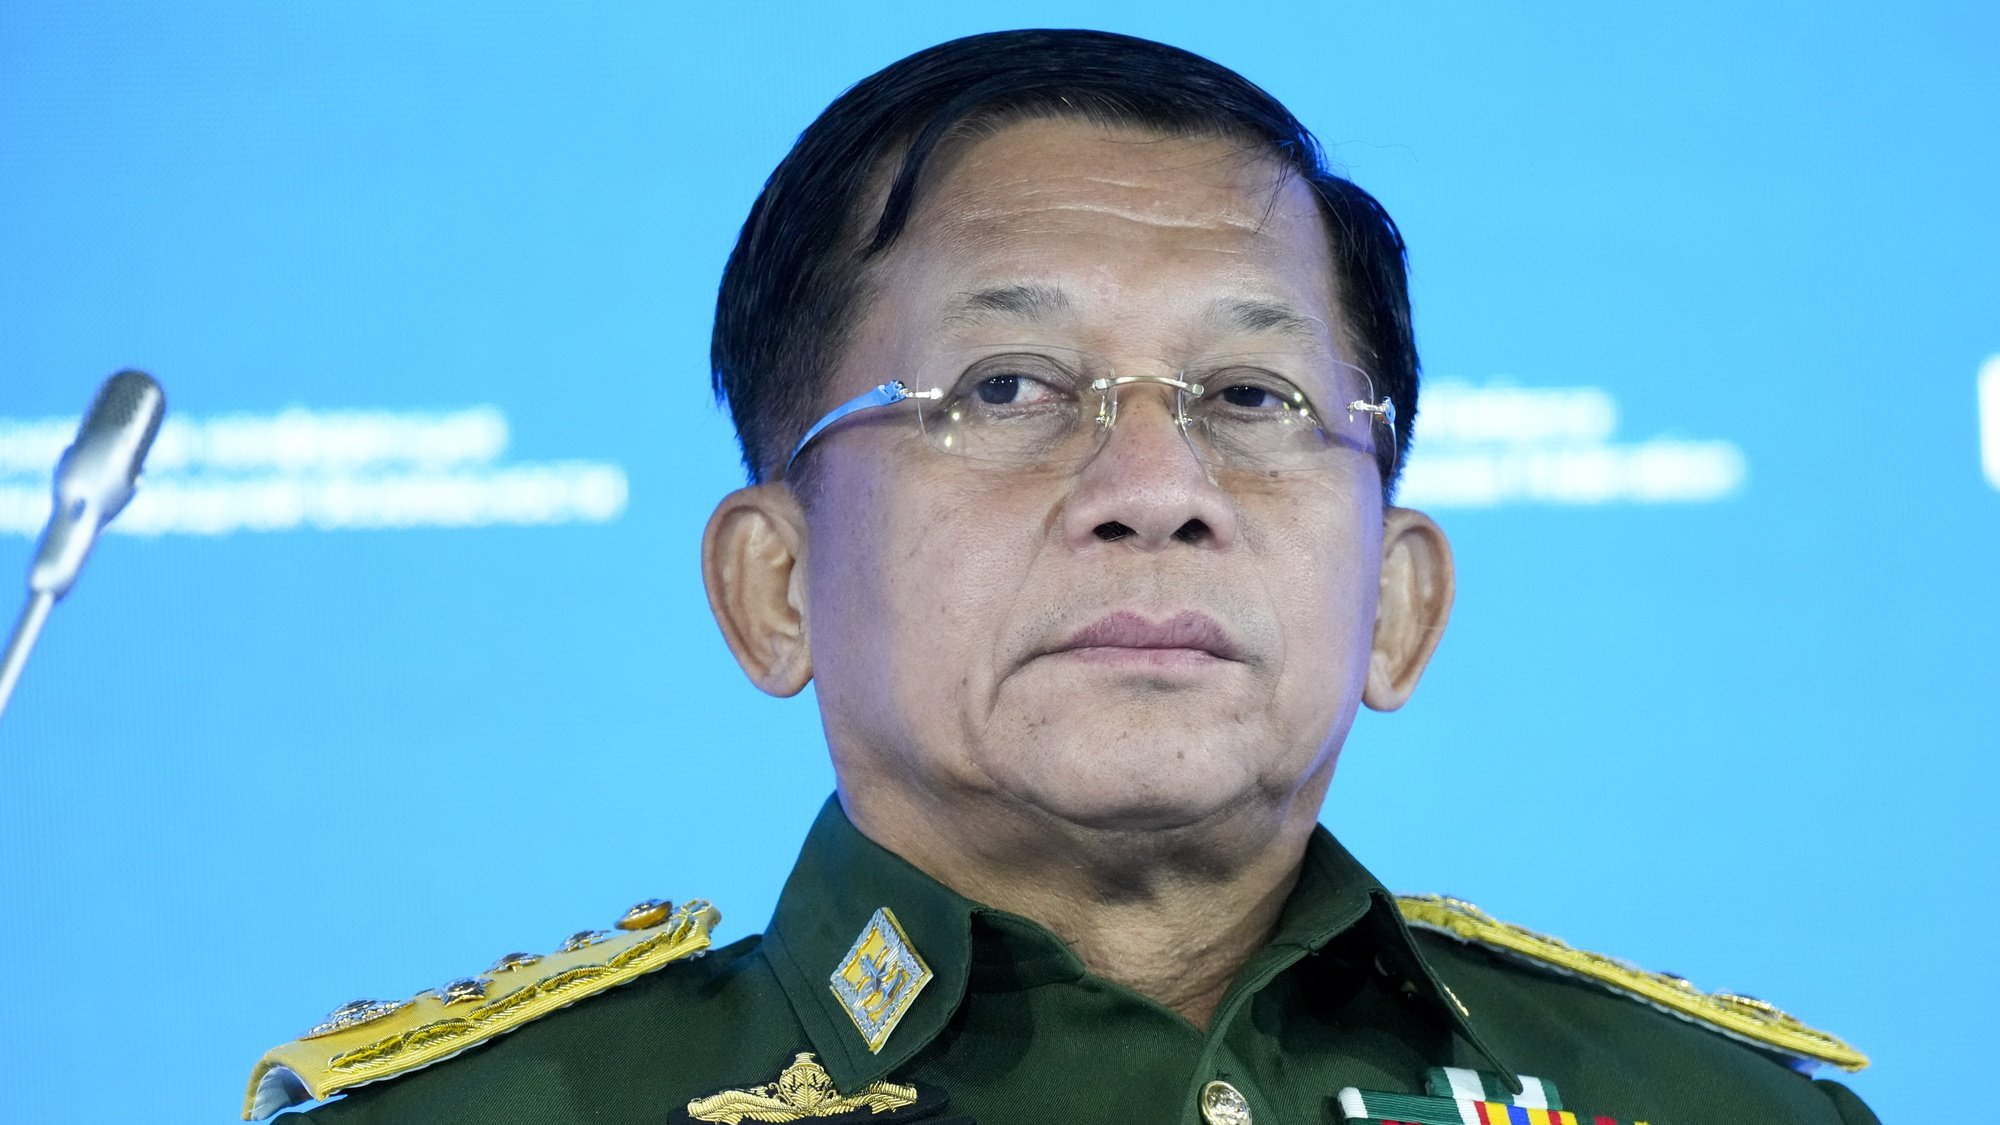 epaselect epa09295064 Commander-in-Chief of Myanmar's armed forces, Senior General Min Aung Hlaing delivers his speech at the IX Moscow conference on international security in Moscow, Russia, 23 June 2021.  EPA/ALEXANDER ZEMLIANICHENKO / POOL